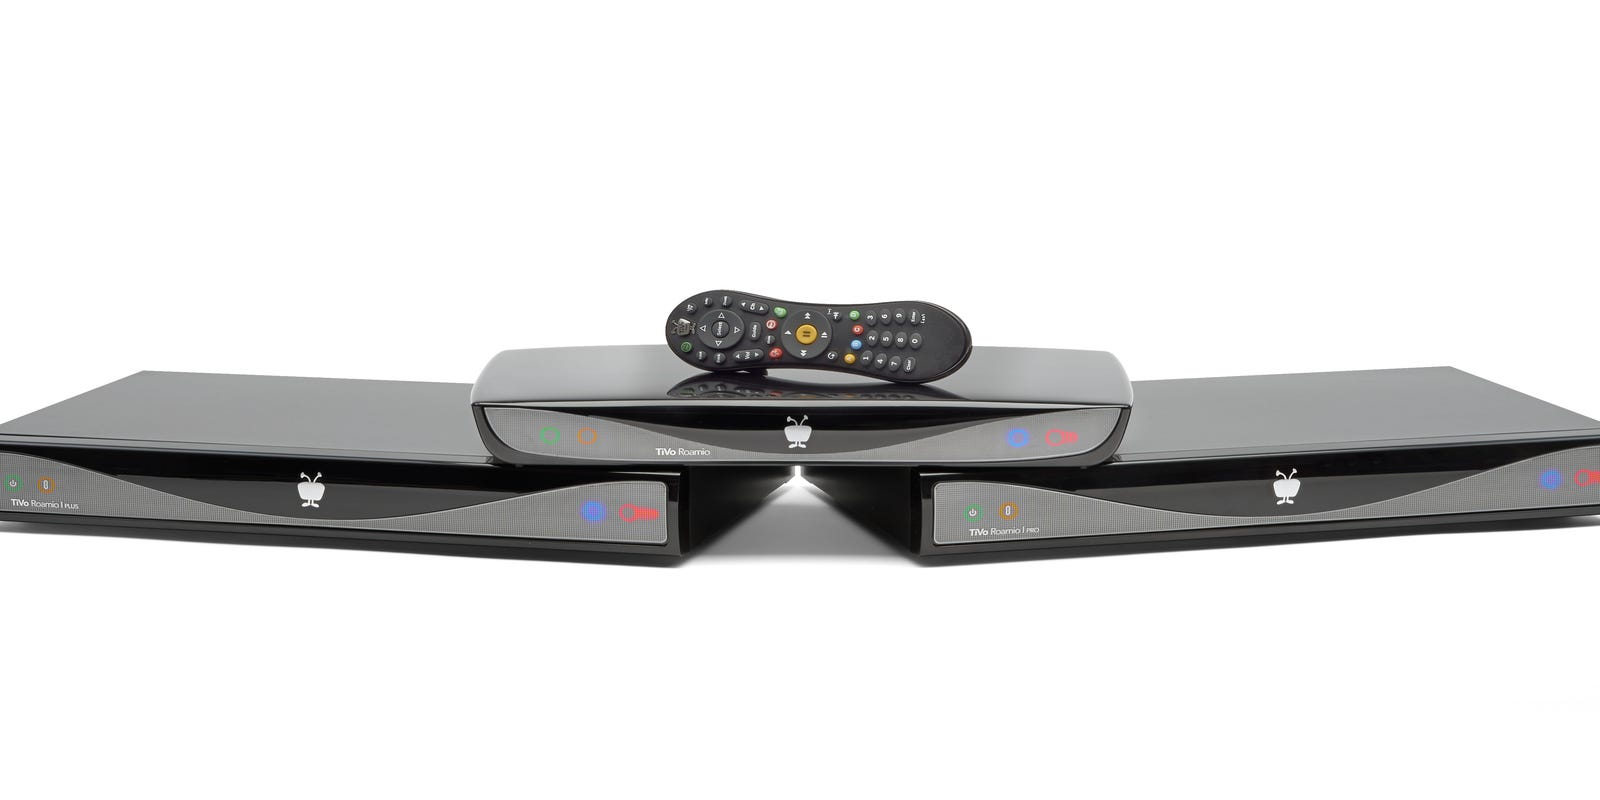 How to transfer shows to new TiVo